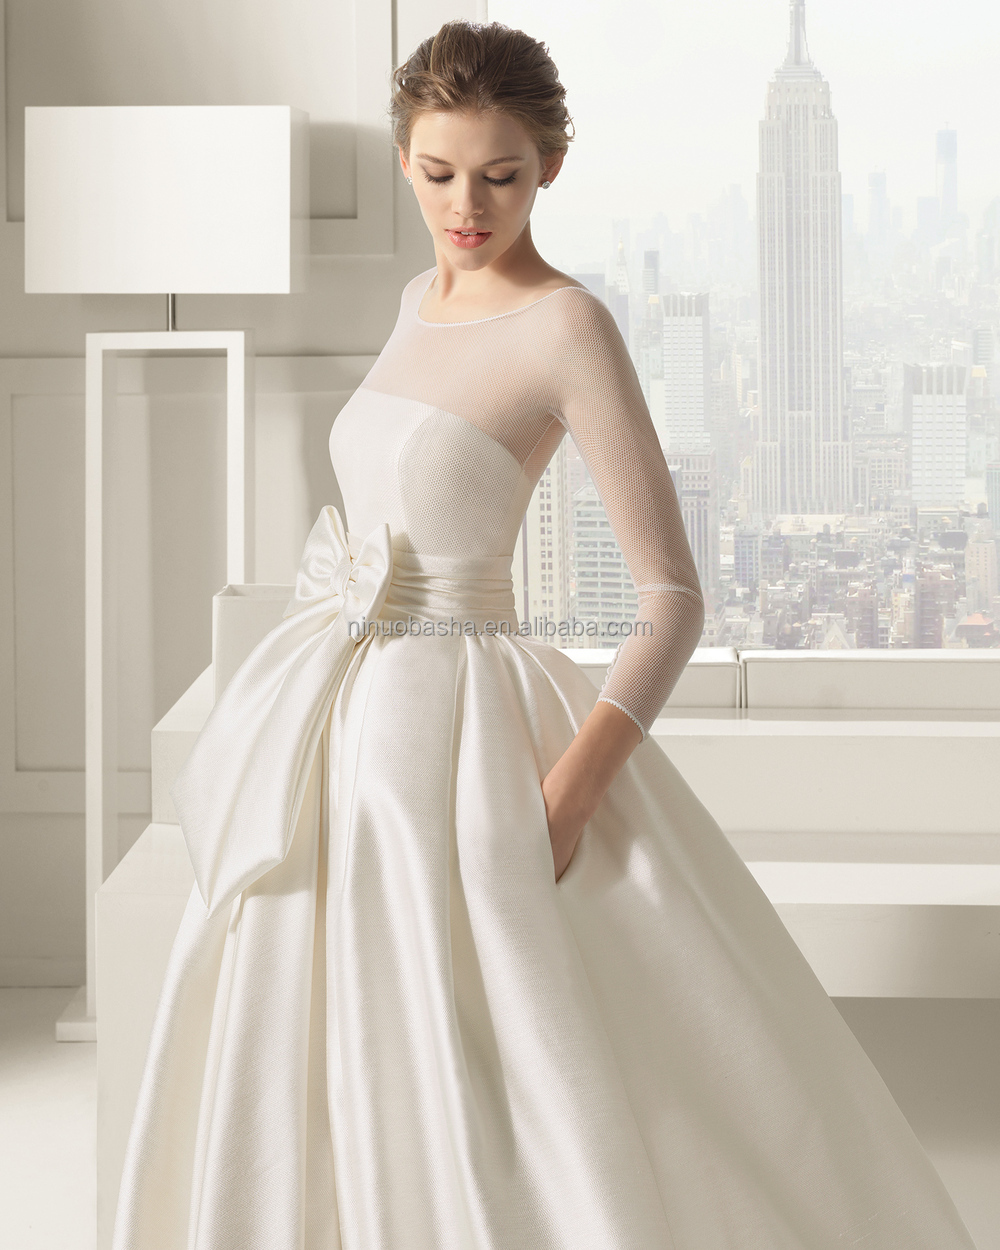 2015 Chic Ivory Ball Gown Wedding Dress Long Sleeve Sheer Covered ...